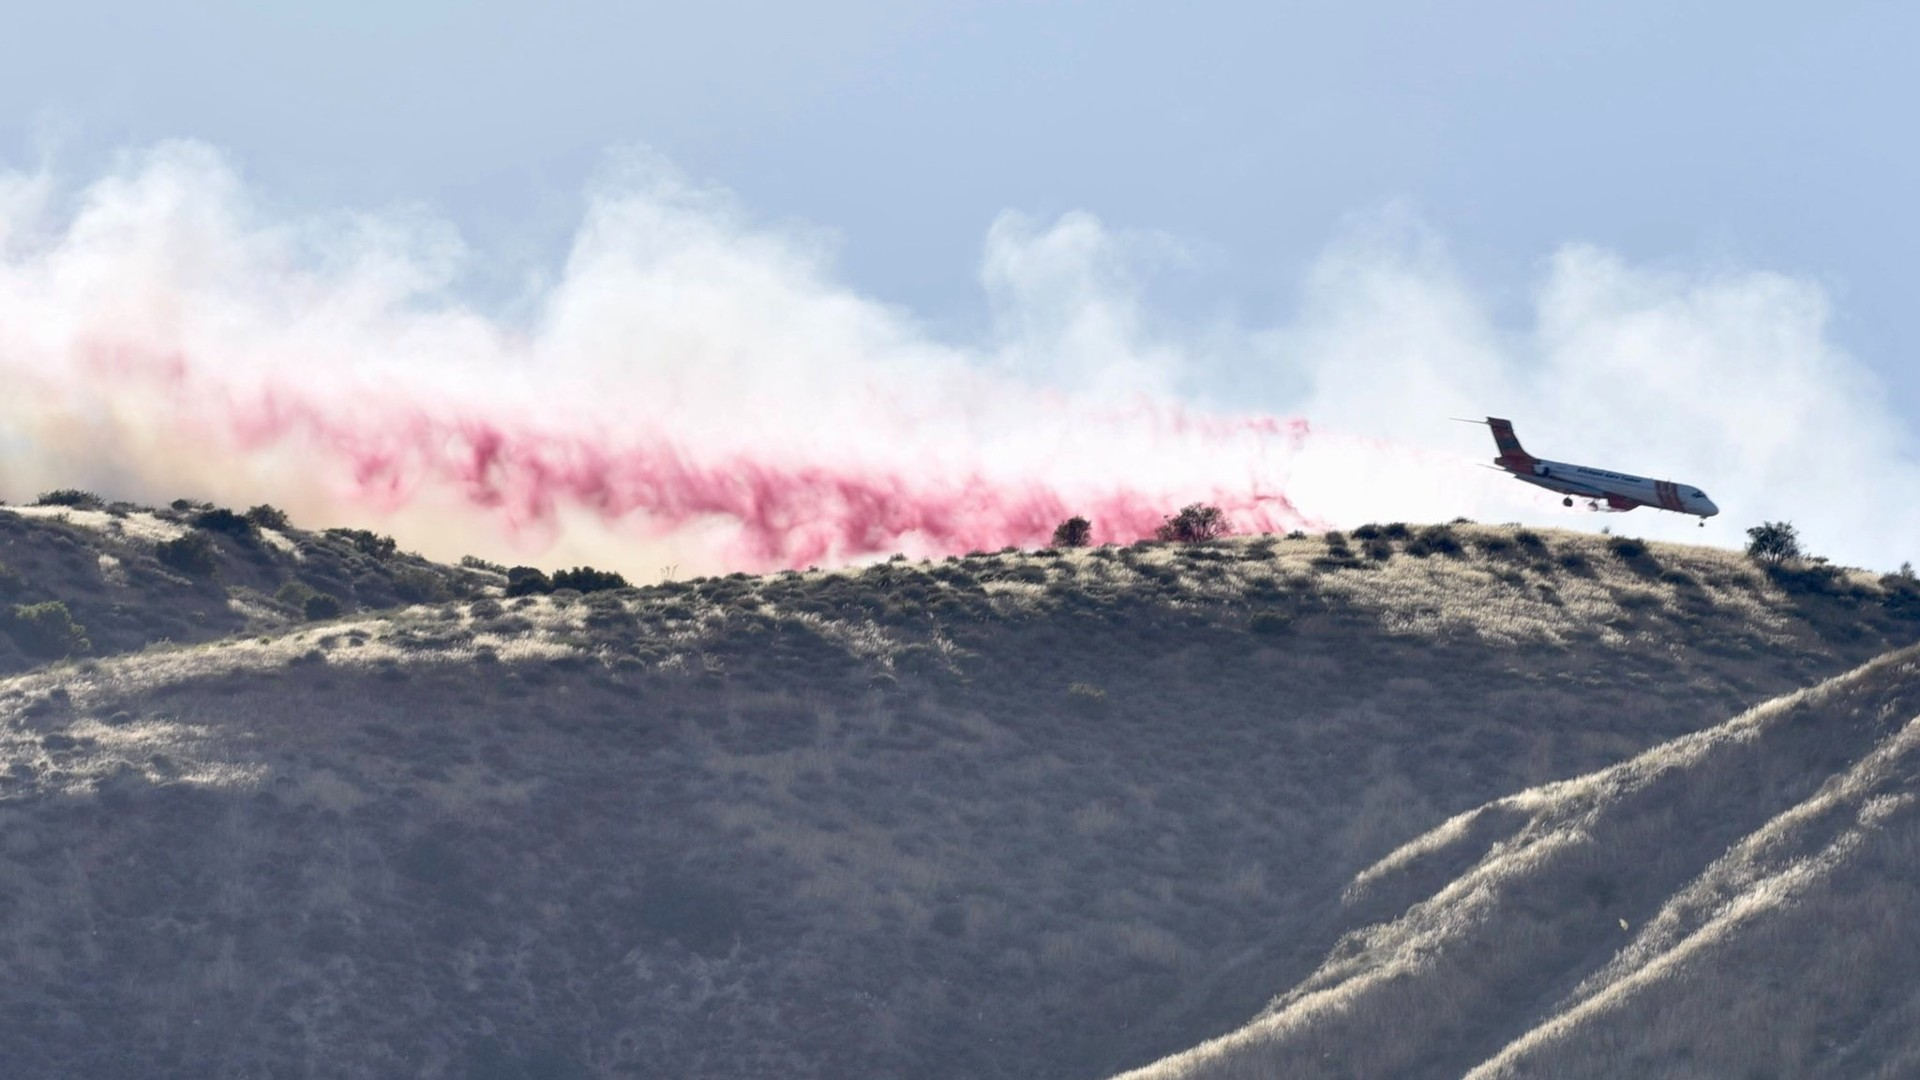 Firefighters battle the 200-acre Lime Fire near Lake Piru in Ventura County on June 10, 2020. (Credit: Ventura County Fire Department)